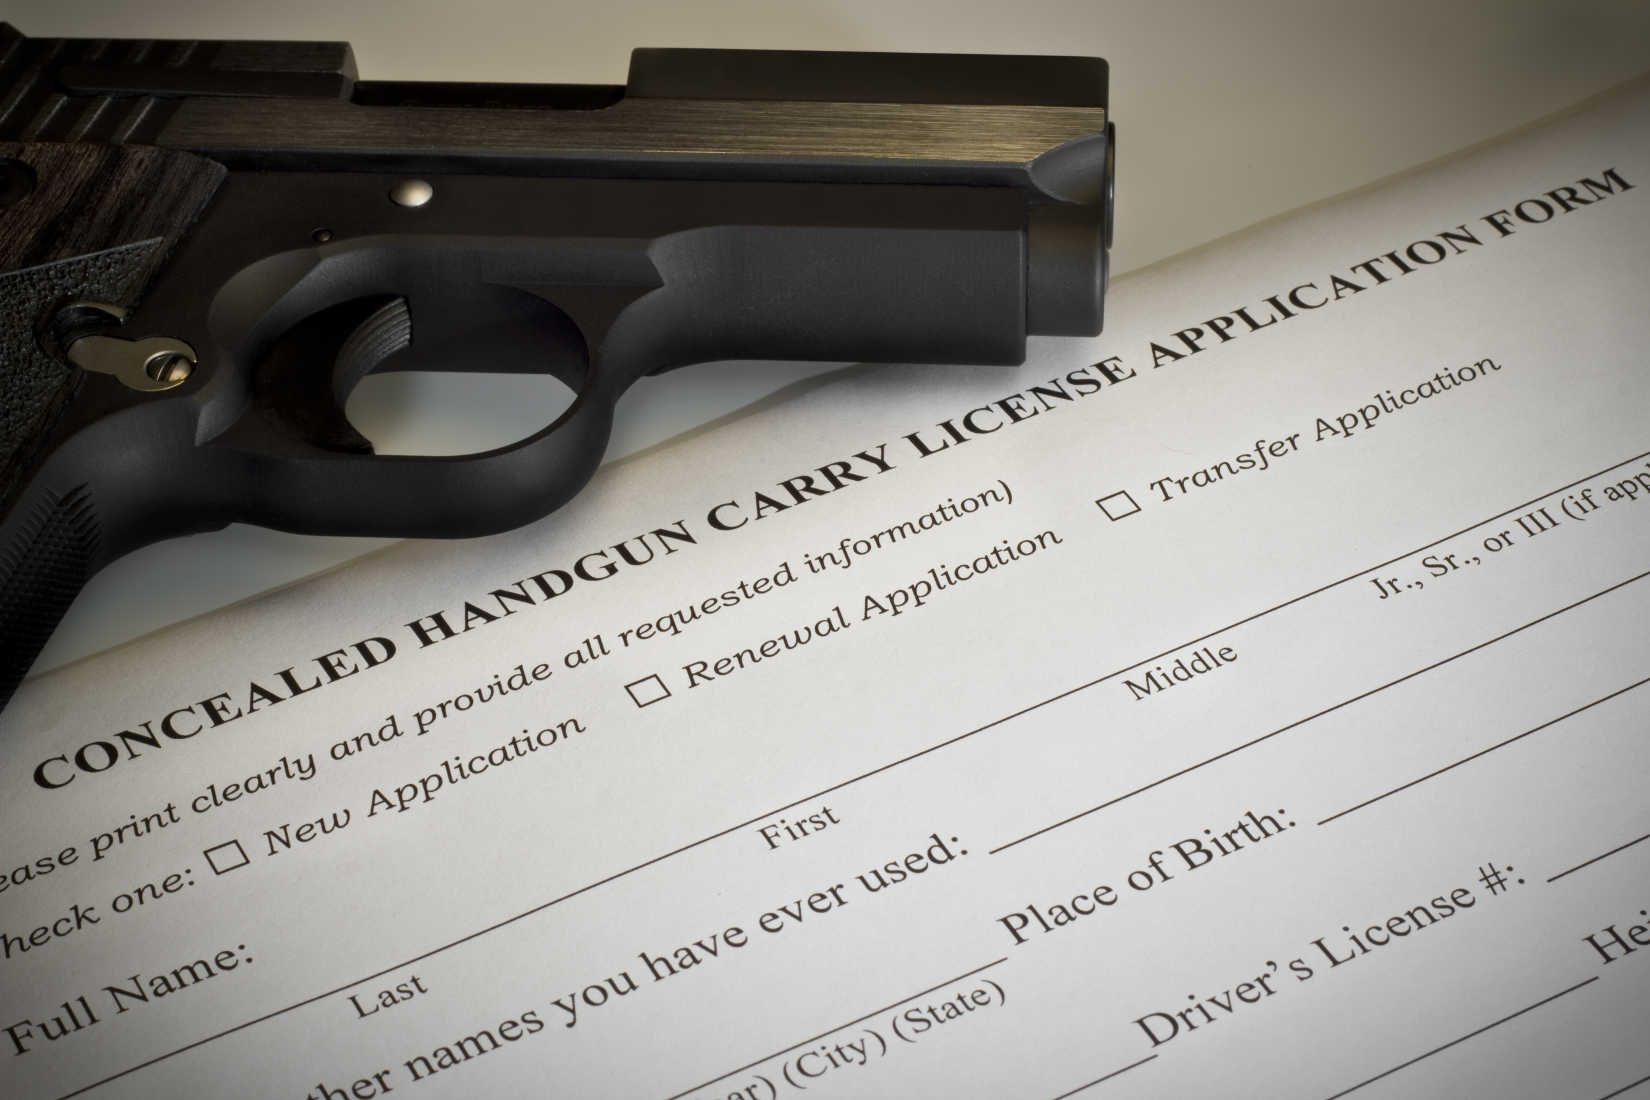 Pennsylvania County Overwhelmed with Concealed Carry Permit Applications